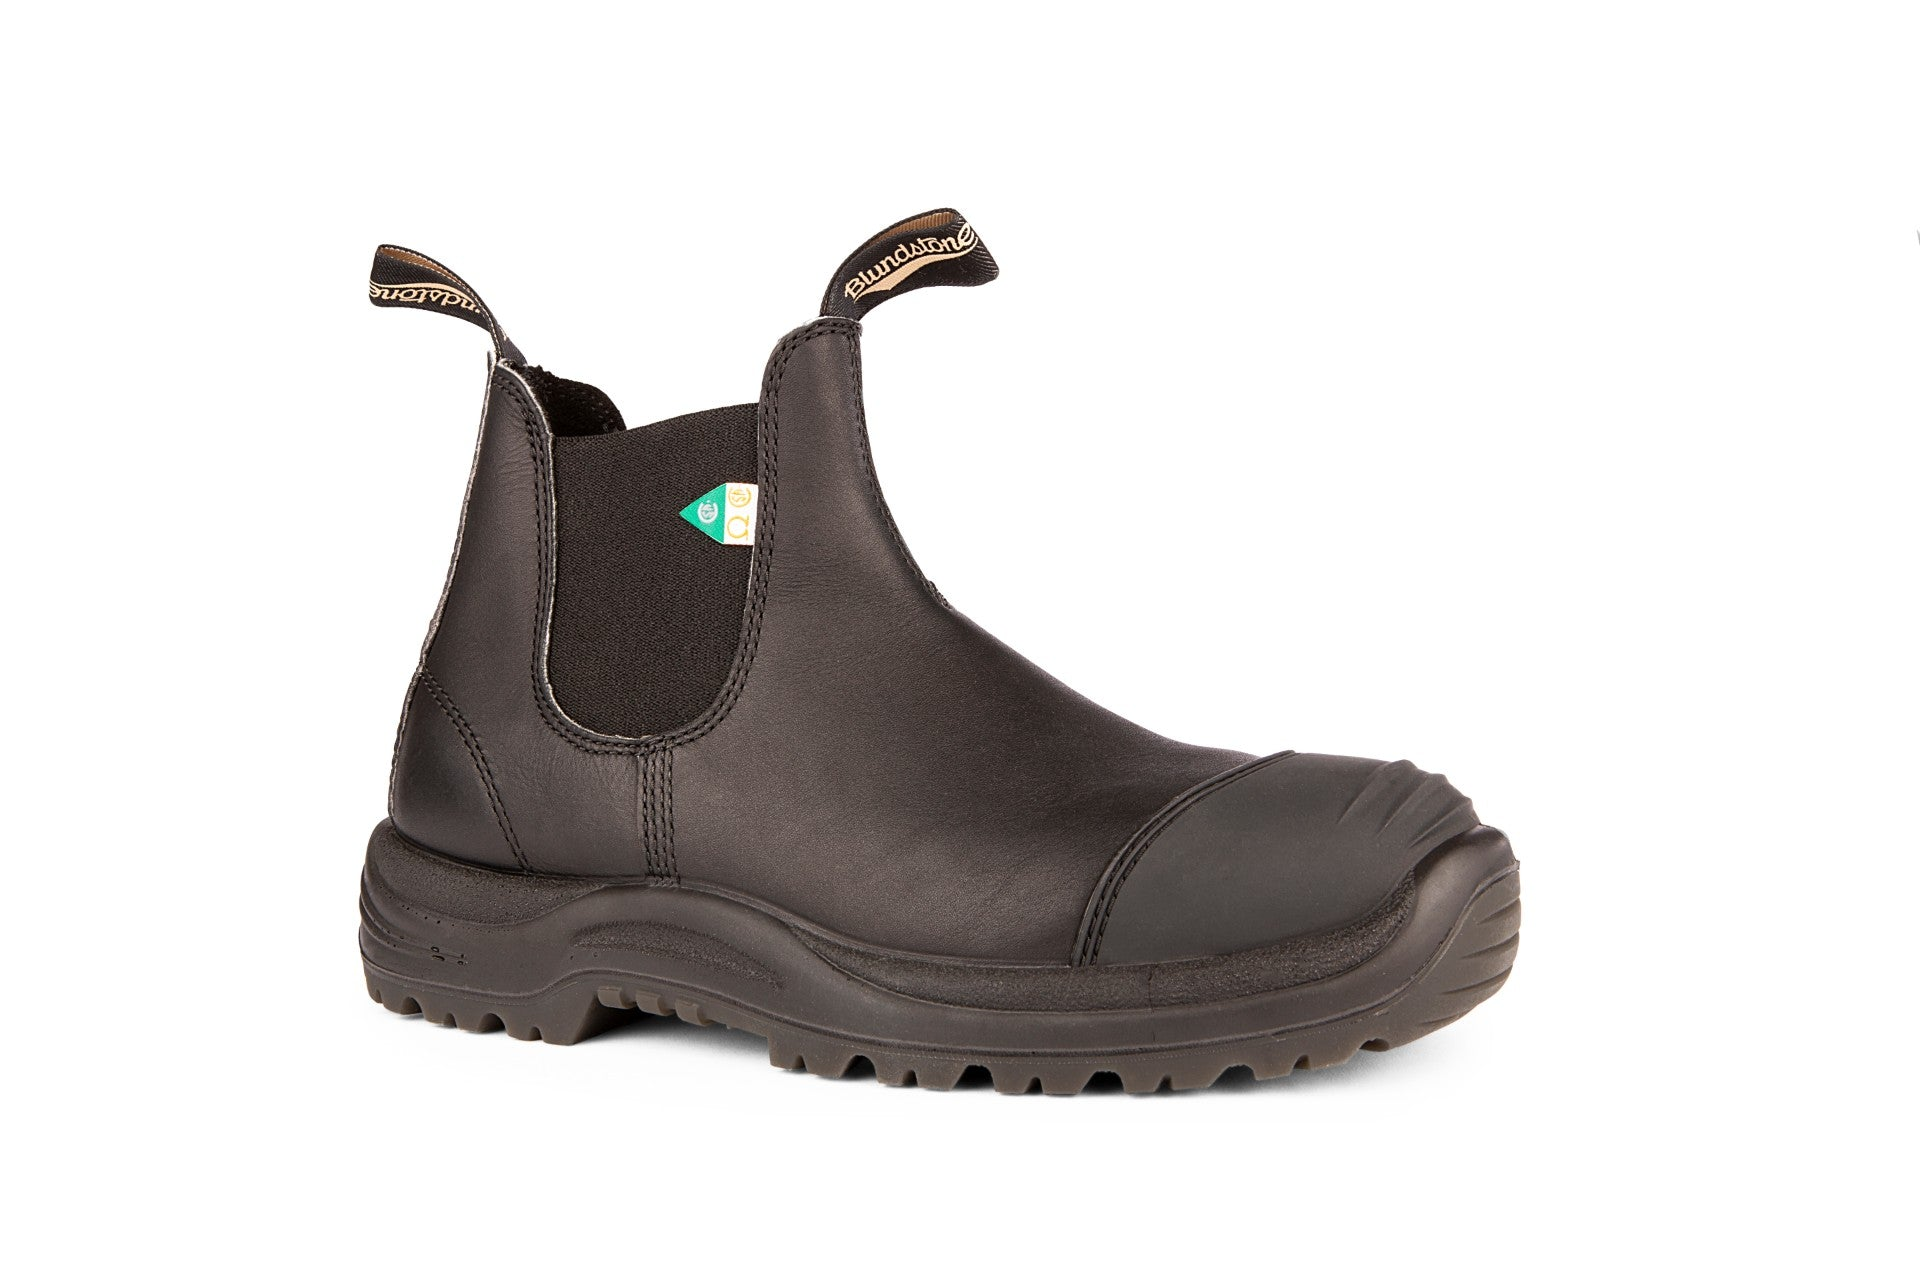 Blundstone Work and Safety Boot Rubber Toe Cap